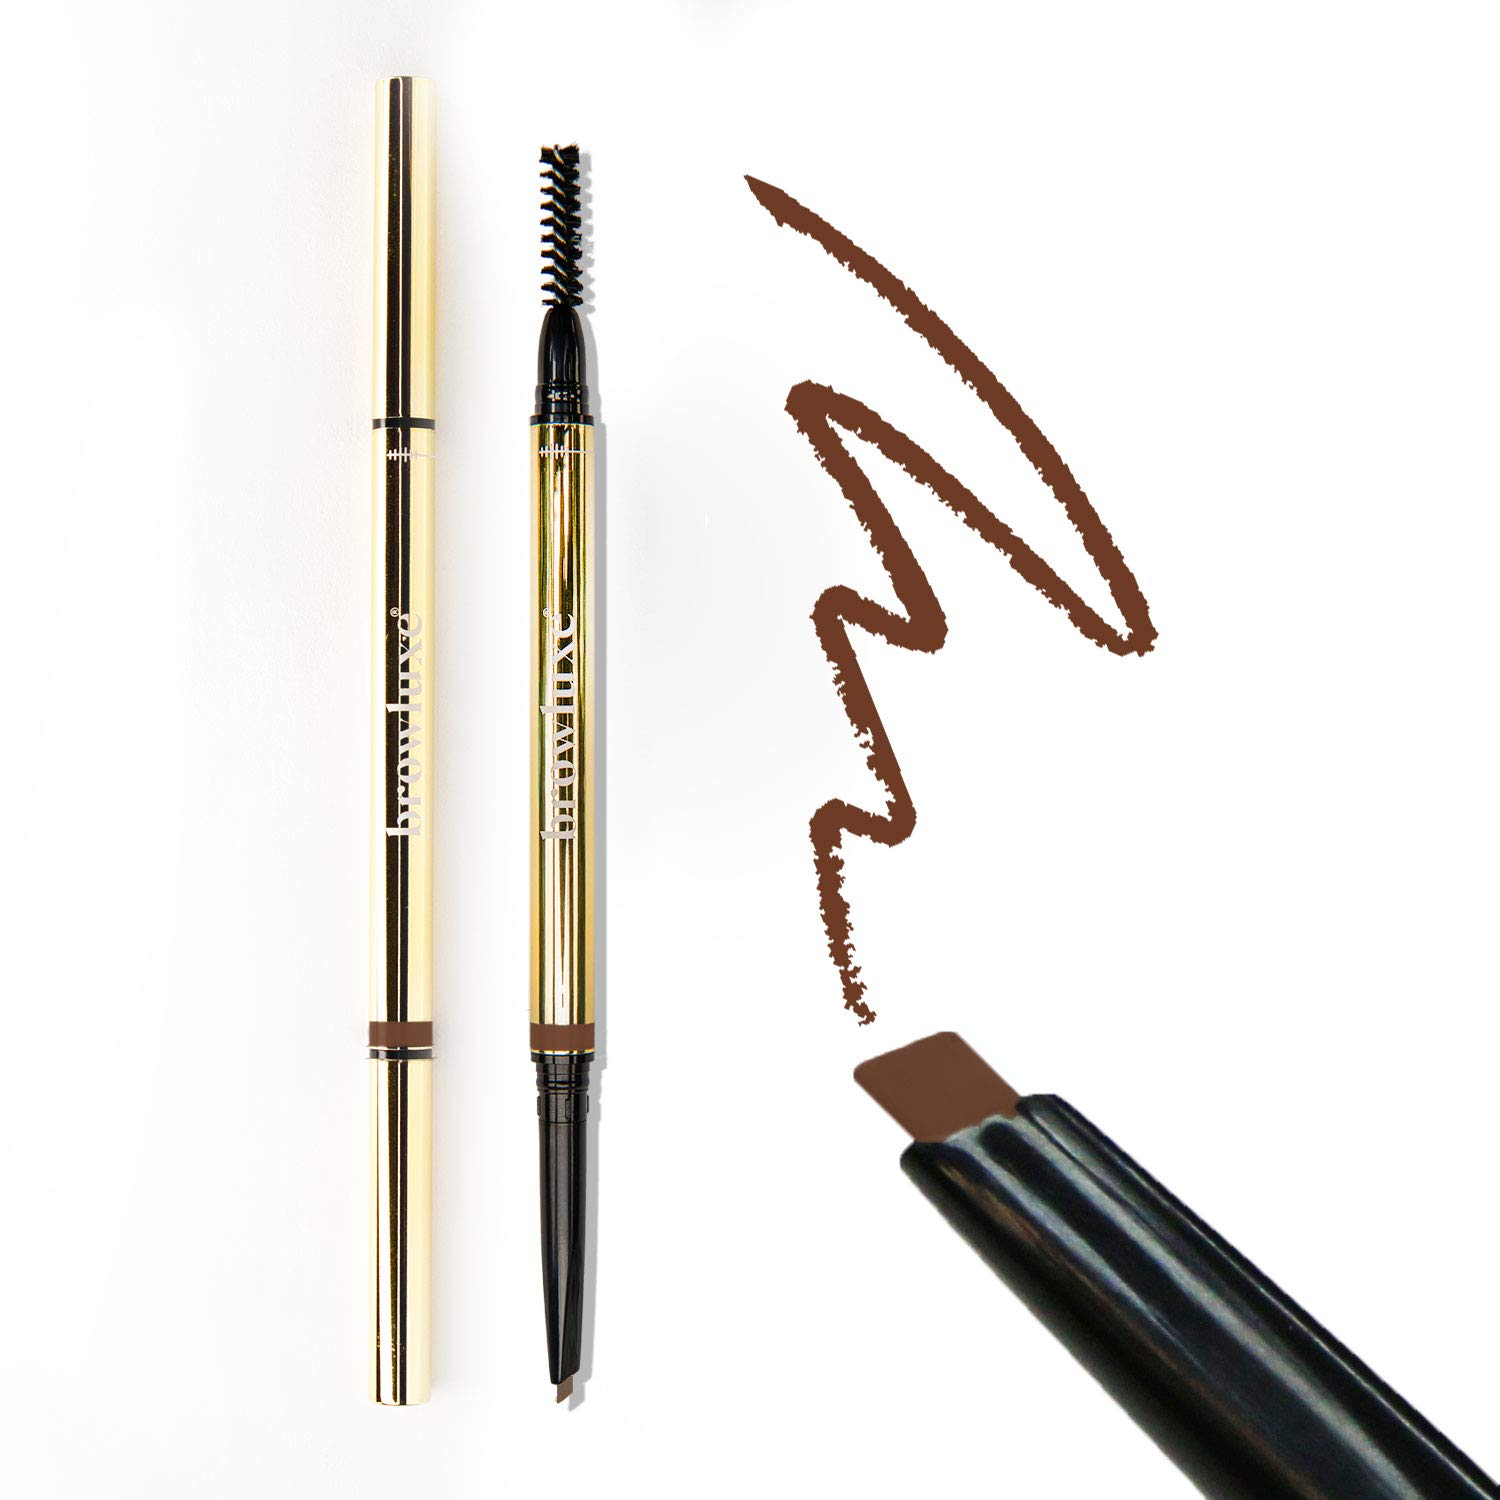 browluxe Precision Brow Pencil for Microblading Effect   Nutmeg Red Eyebrow Pencil for Red and Auburn Hair   Eyebrow Kit with Pen and Brow Brush   Smudge Proof Brow Color for Flawless Brows